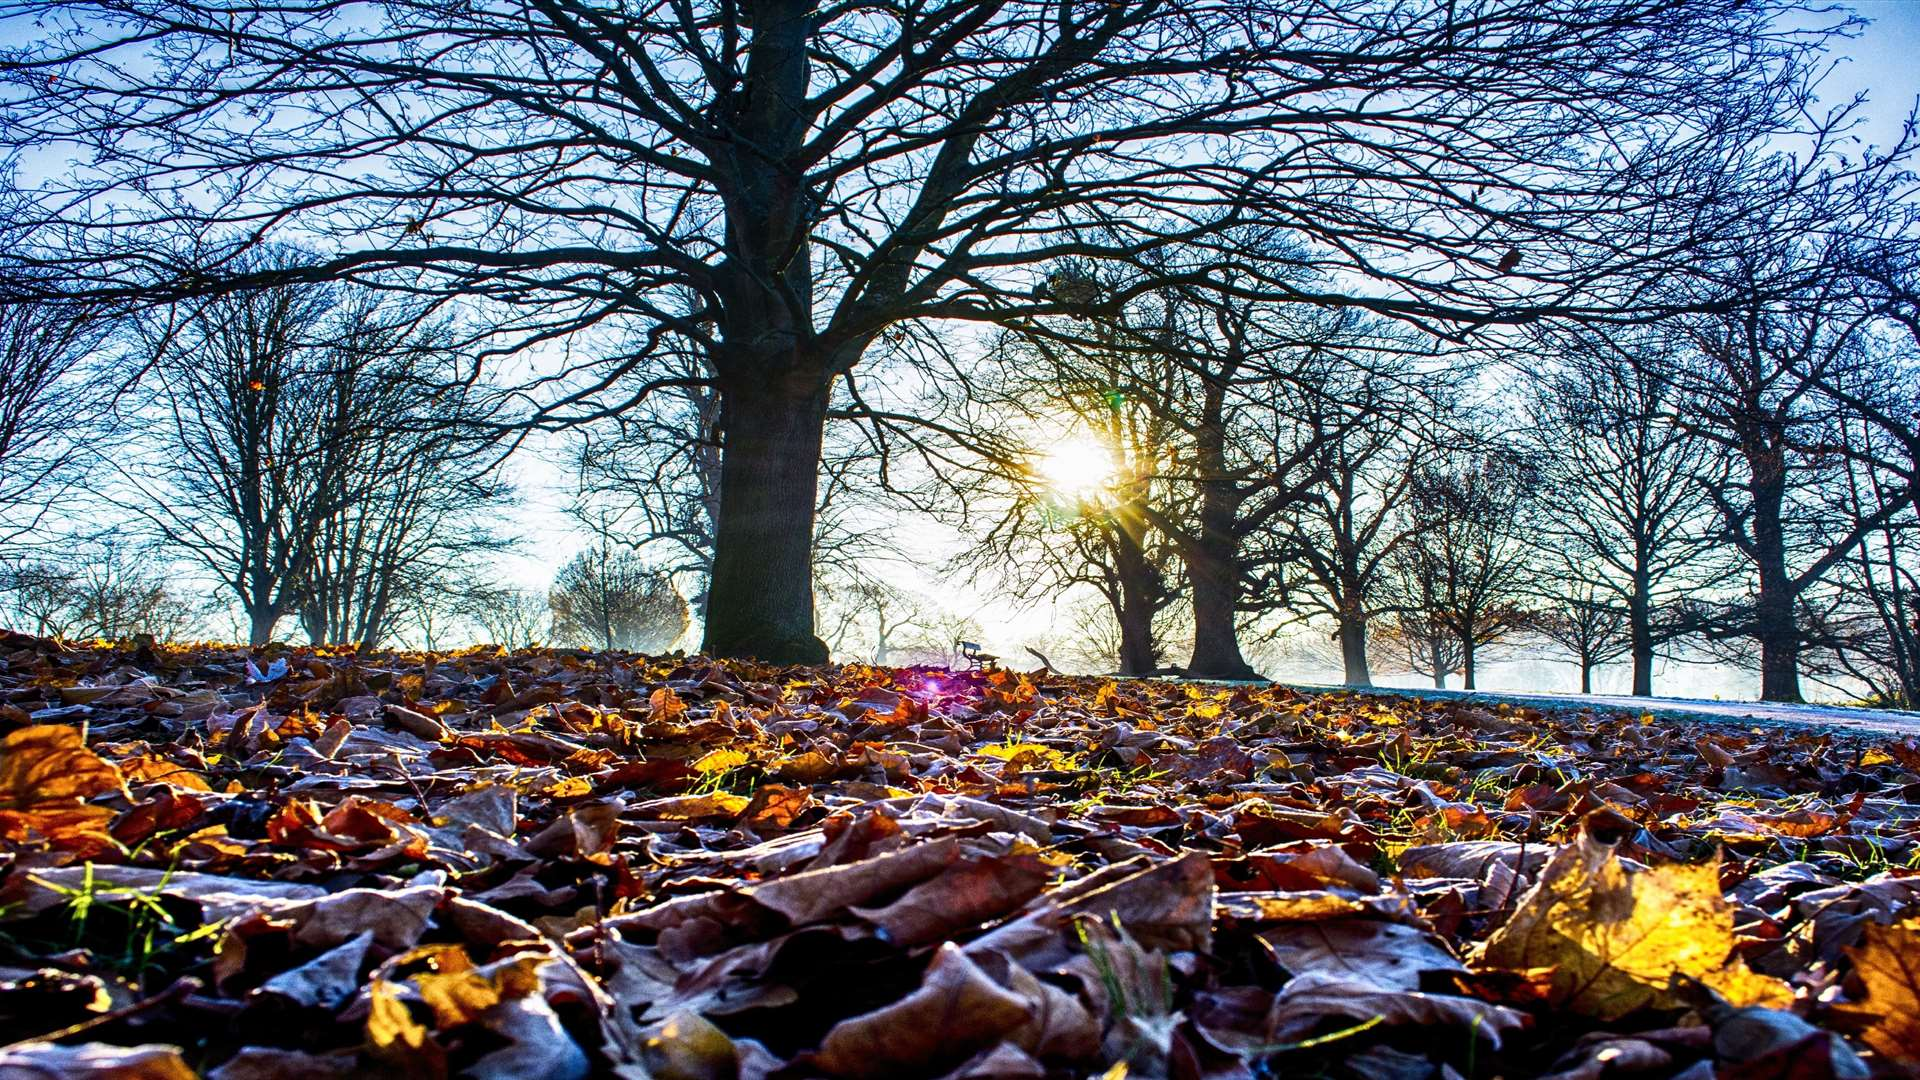 Roger Wilkins' picture won the Seasons category of the Mote Park photographic competition